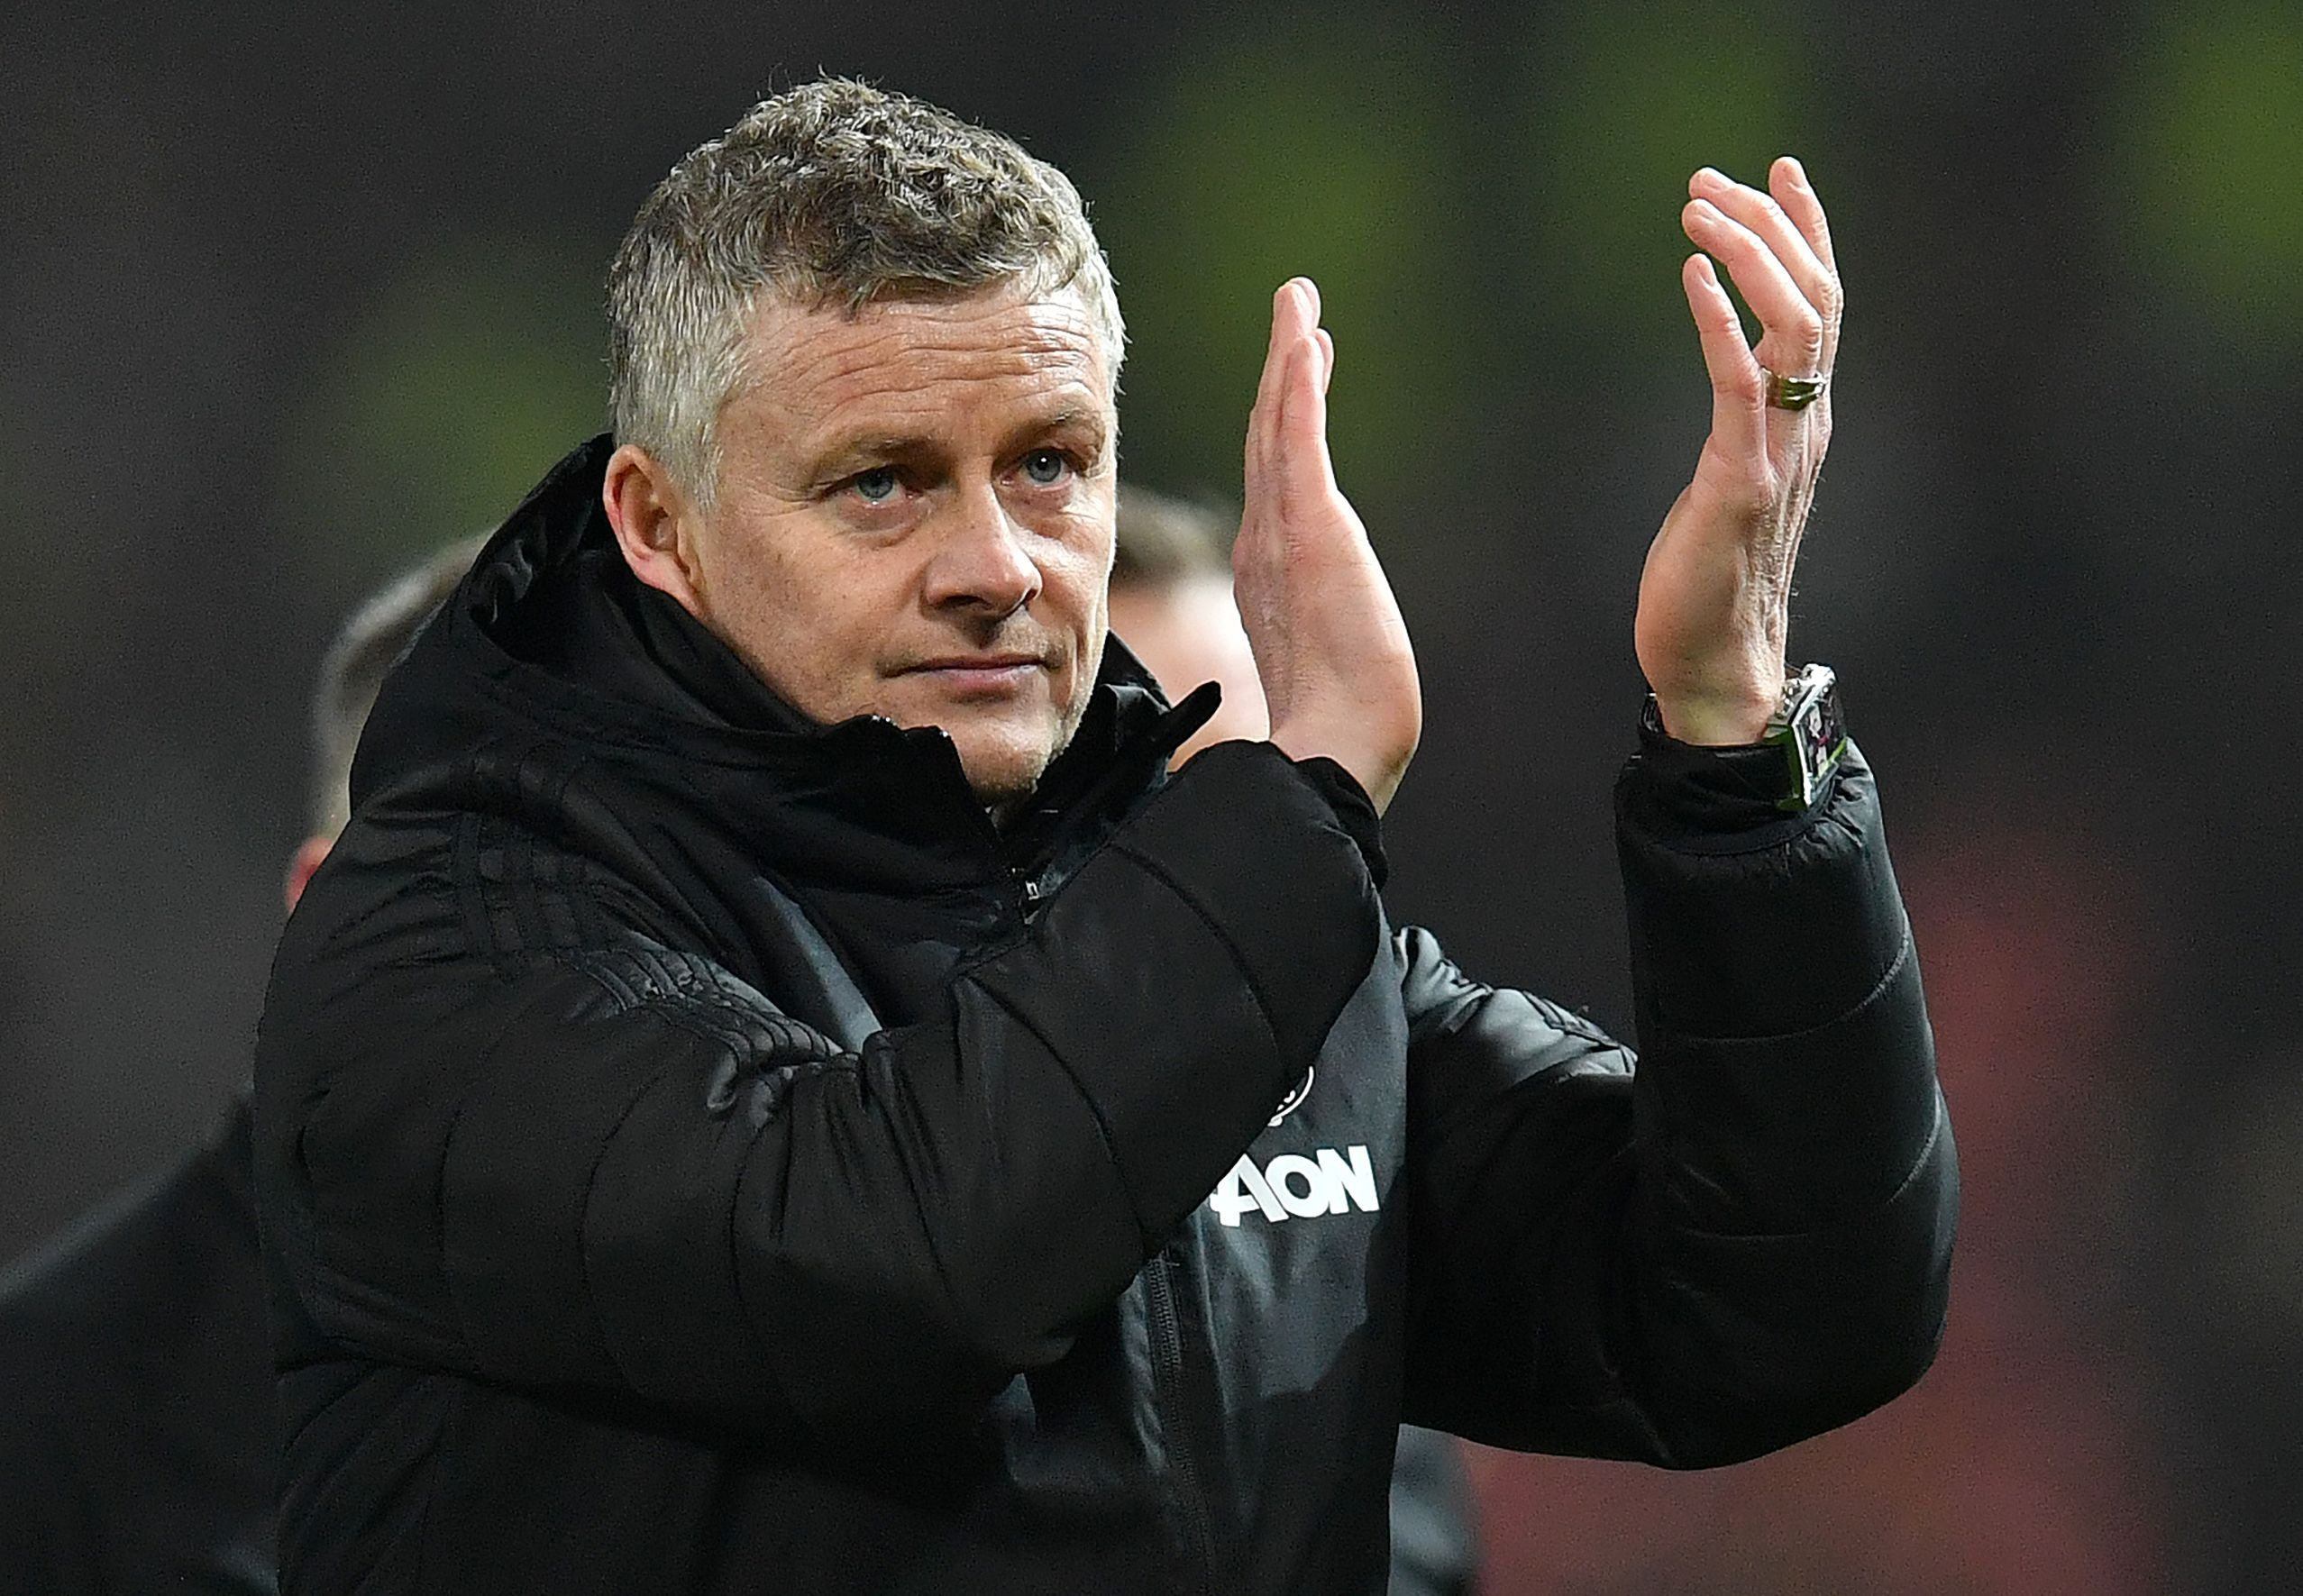 Manchester United consider sacking Ole Gunnar Solskjaer and could bring in England boss Gareth Southgate after Euro 2020